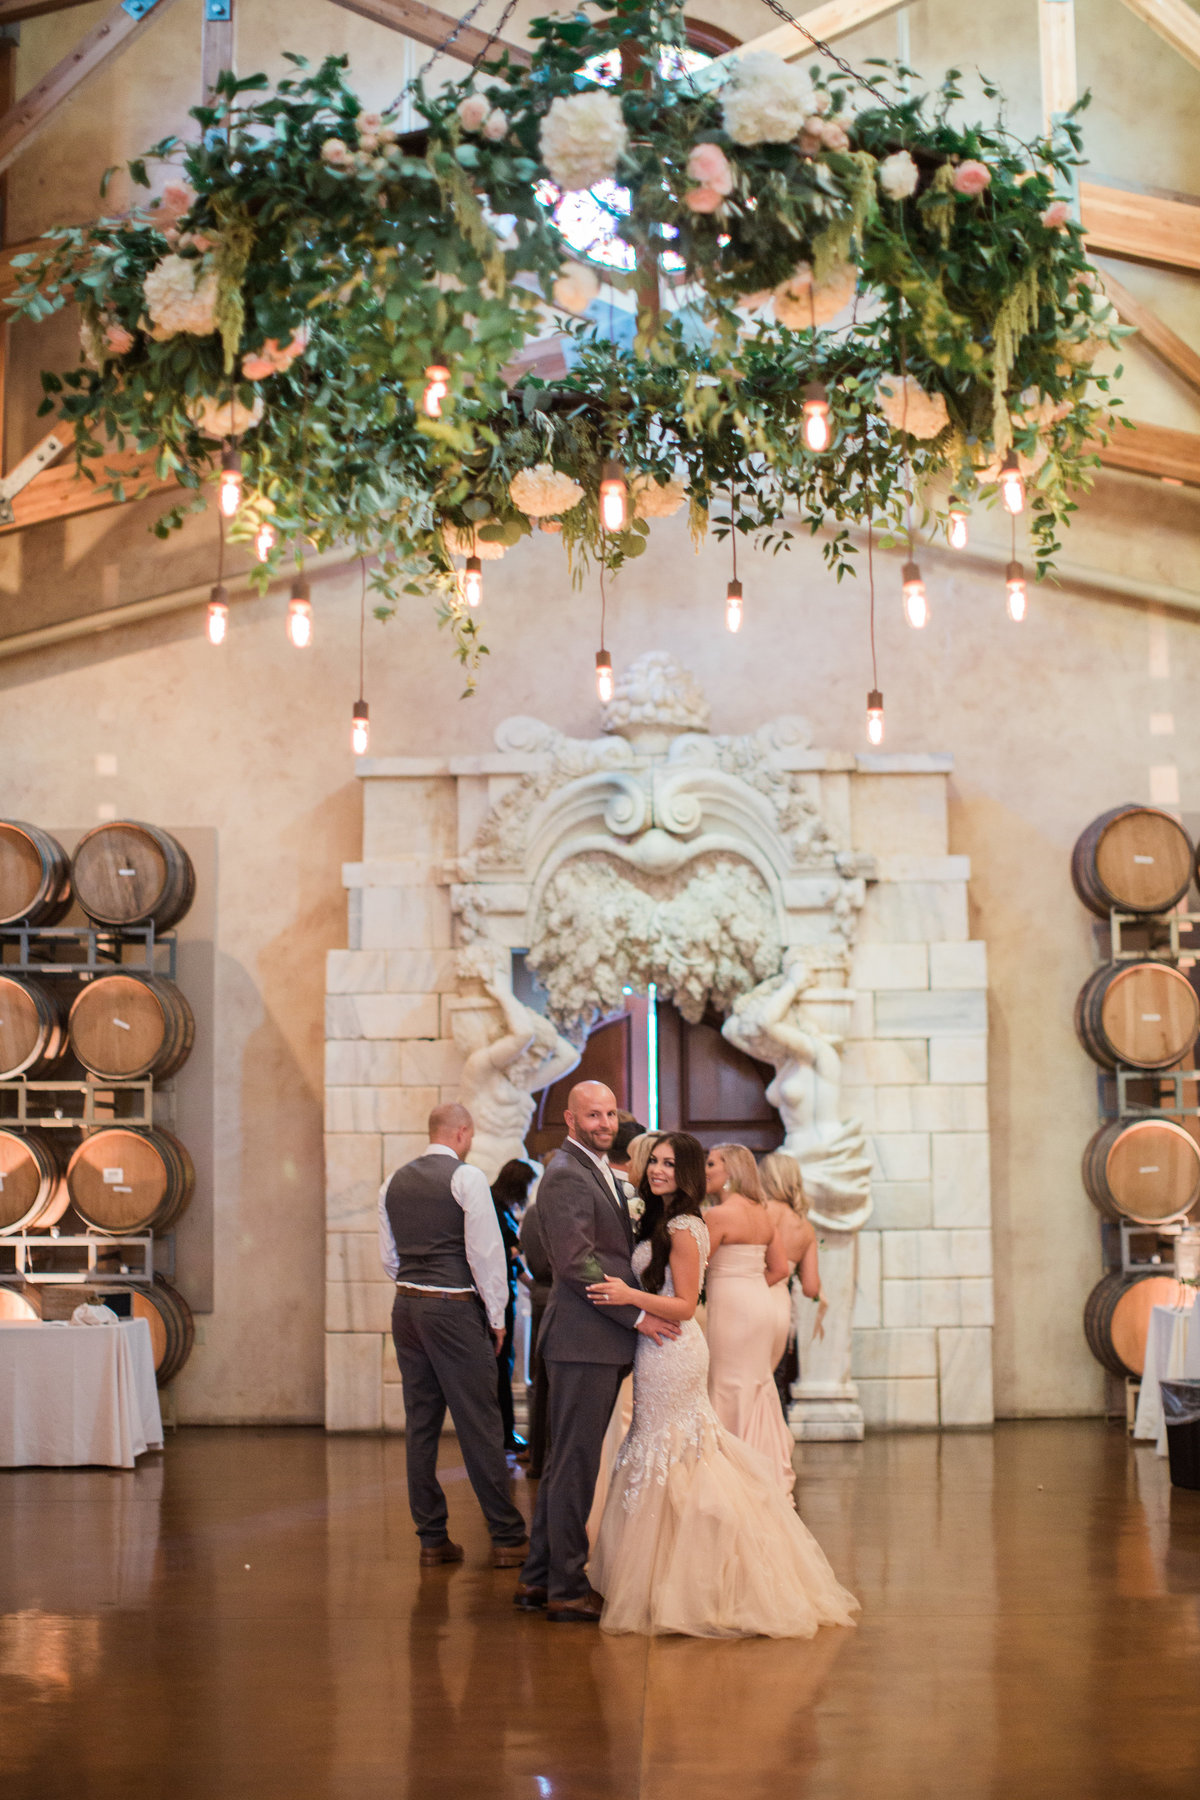 Natalie Bray Studios, Natalie Bray Photography, Southern California Wedding Photographer, Fine Art wedding, Destination Wedding Photographer, Sonoma Wedding Photographer-5